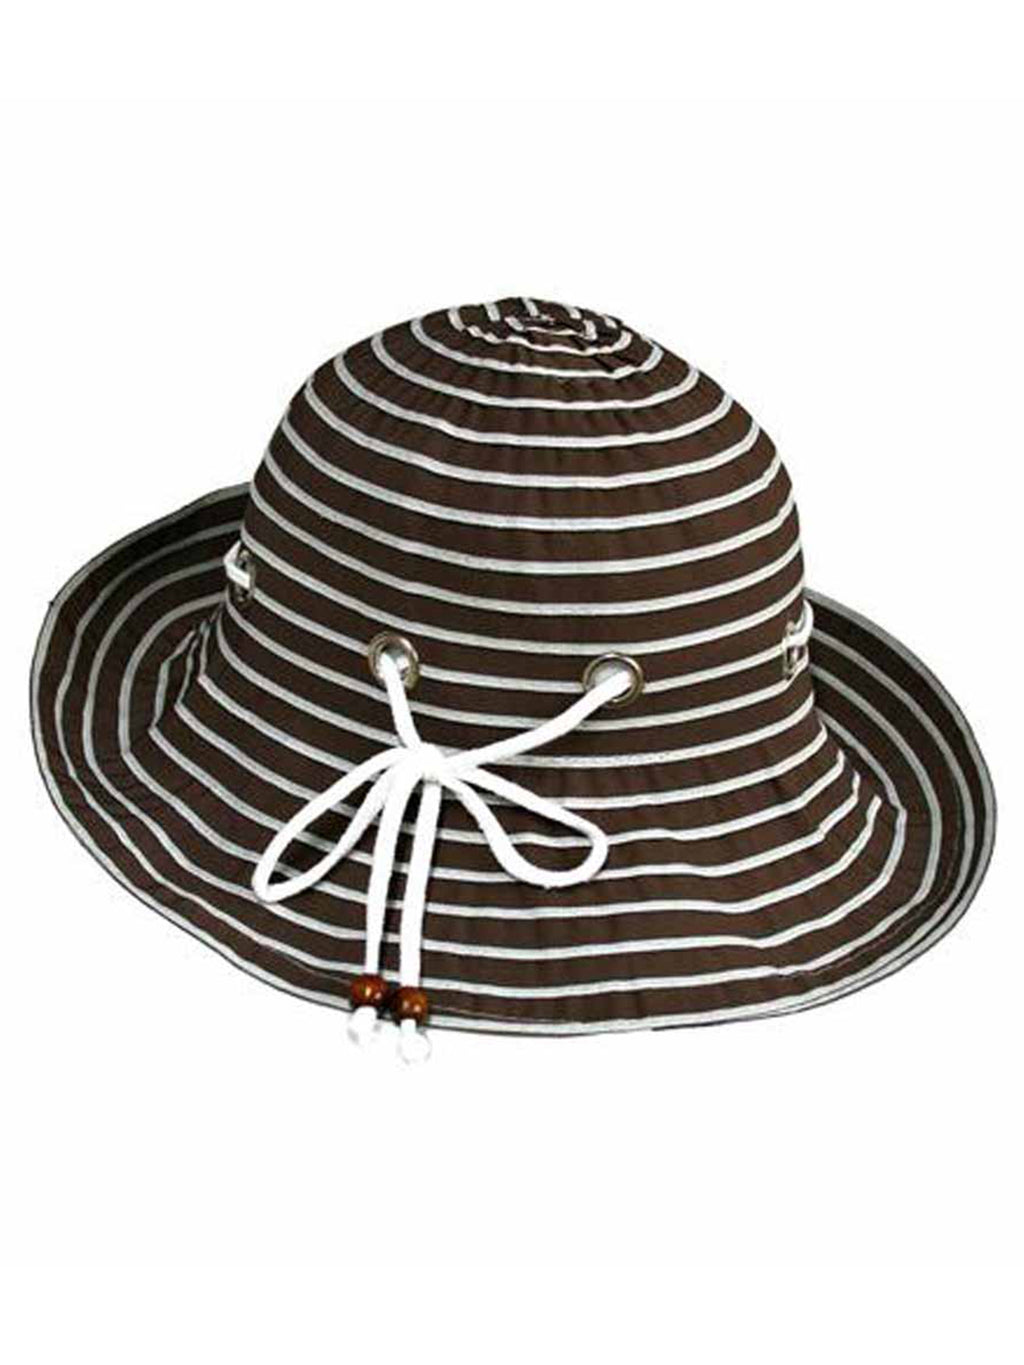 Brown Nautical Bucket Hat With Rope Hatband